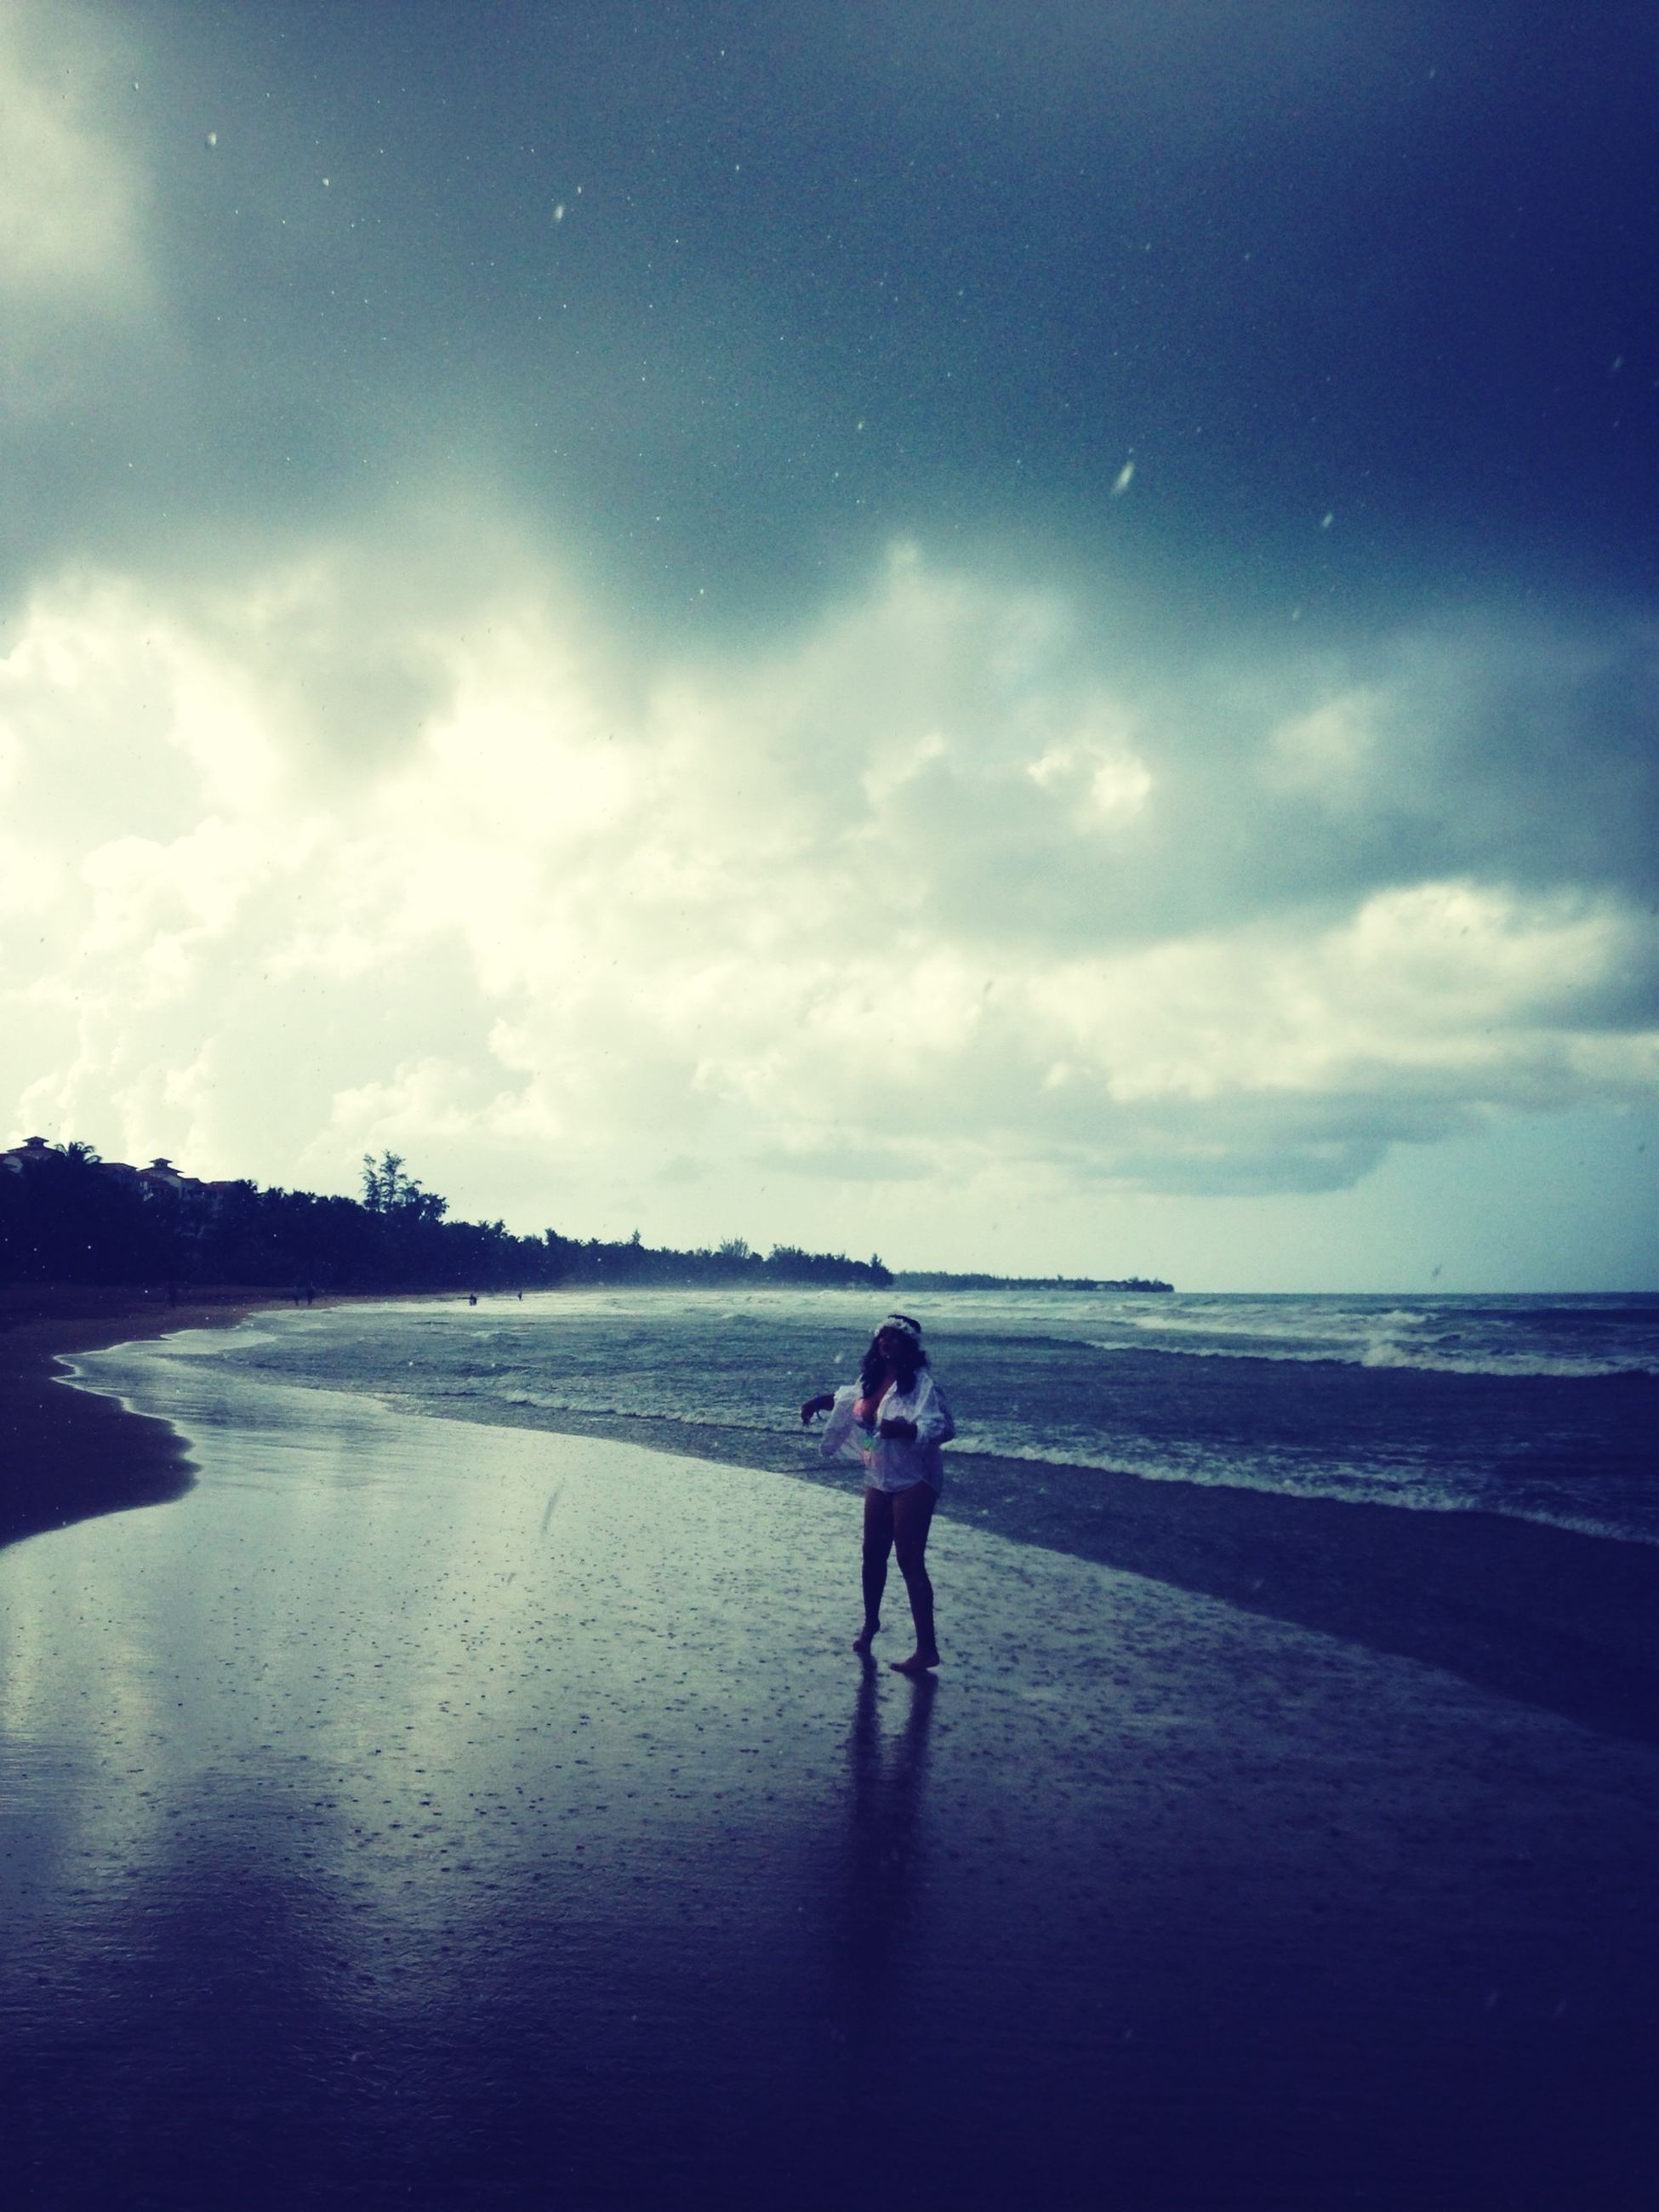 sky, sea, full length, beach, water, cloud - sky, horizon over water, shore, lifestyles, leisure activity, rear view, sand, cloudy, cloud, walking, nature, tranquility, standing